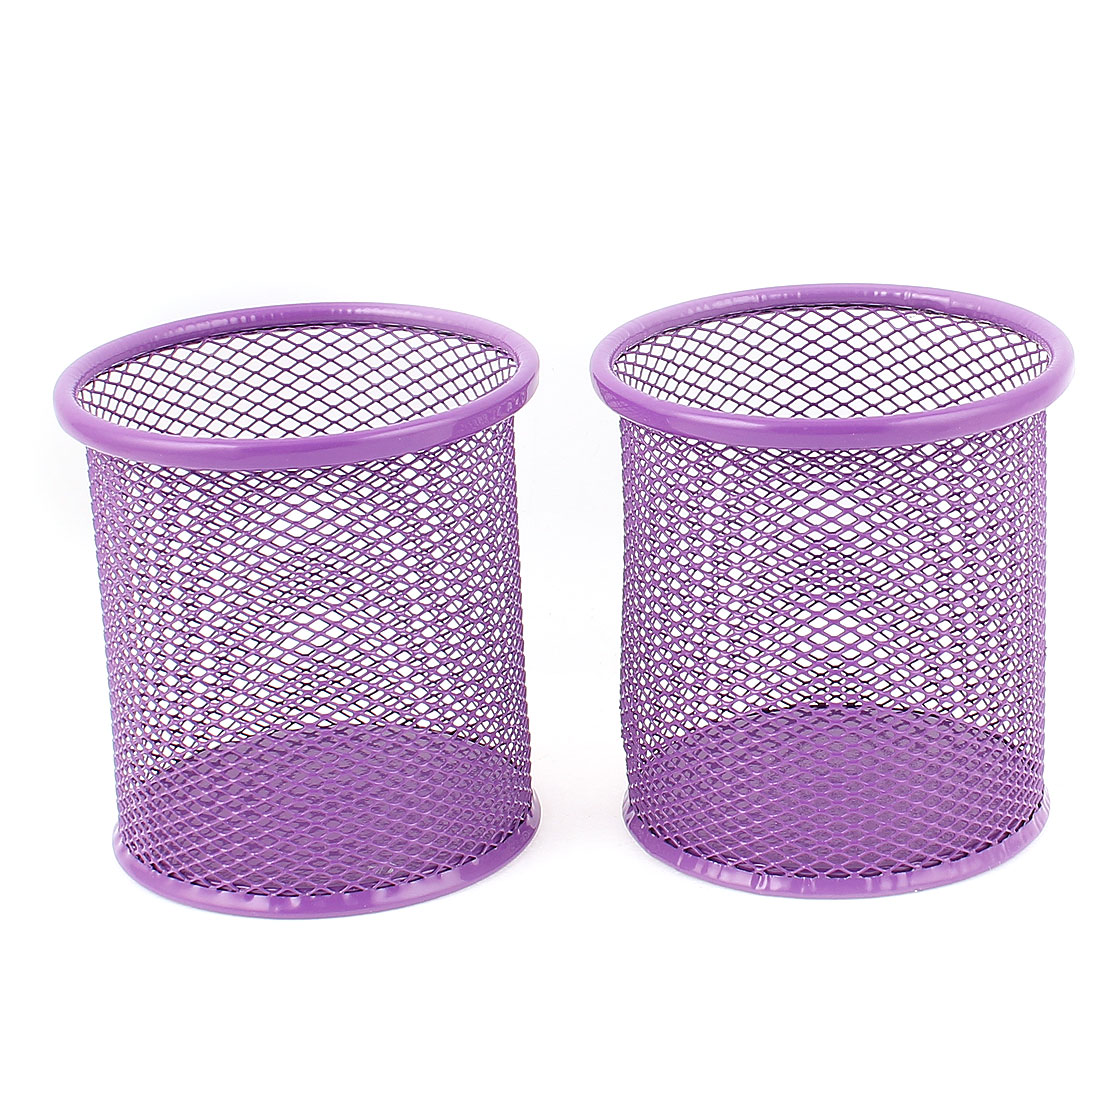 Metallic Mesh Cylinder Shaped Stationery Pen Holder Box Container Purple 2Pcs